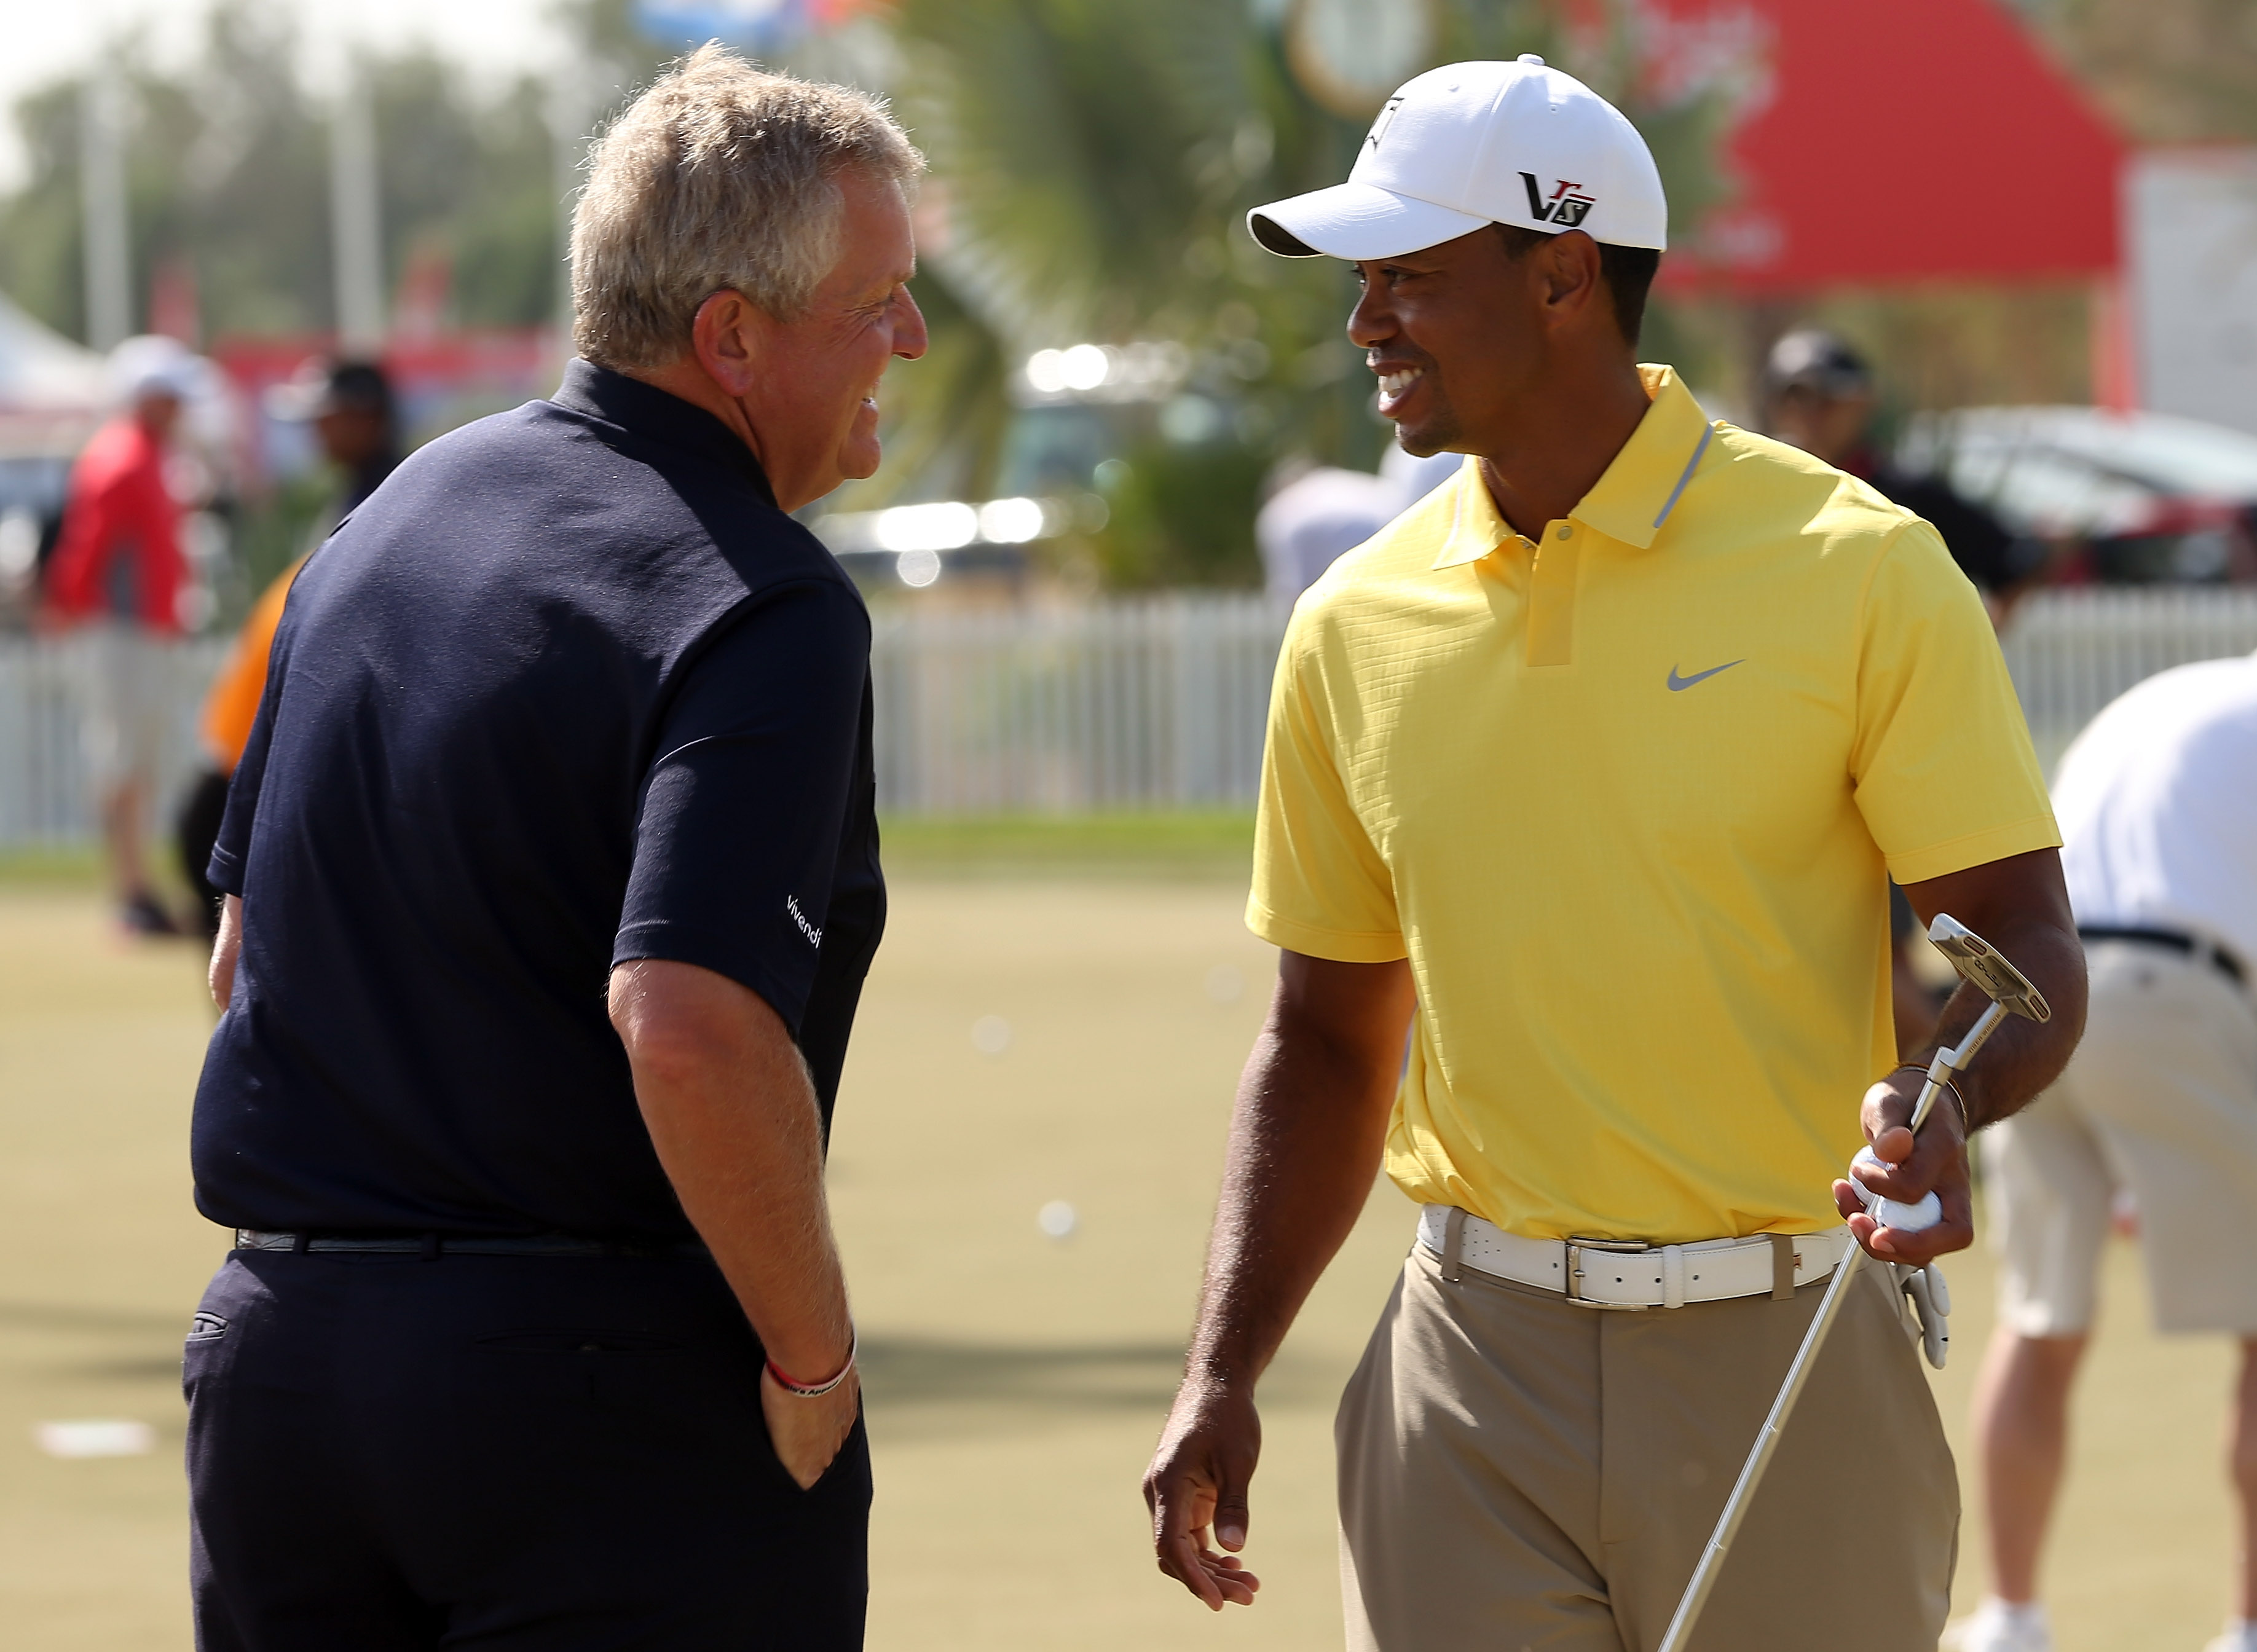 Tiger Woods chats with Colin Montgomerie during the Pro Am prior to the start of The Abu Dhabi HSBC Golf Championship on January 16, 2013